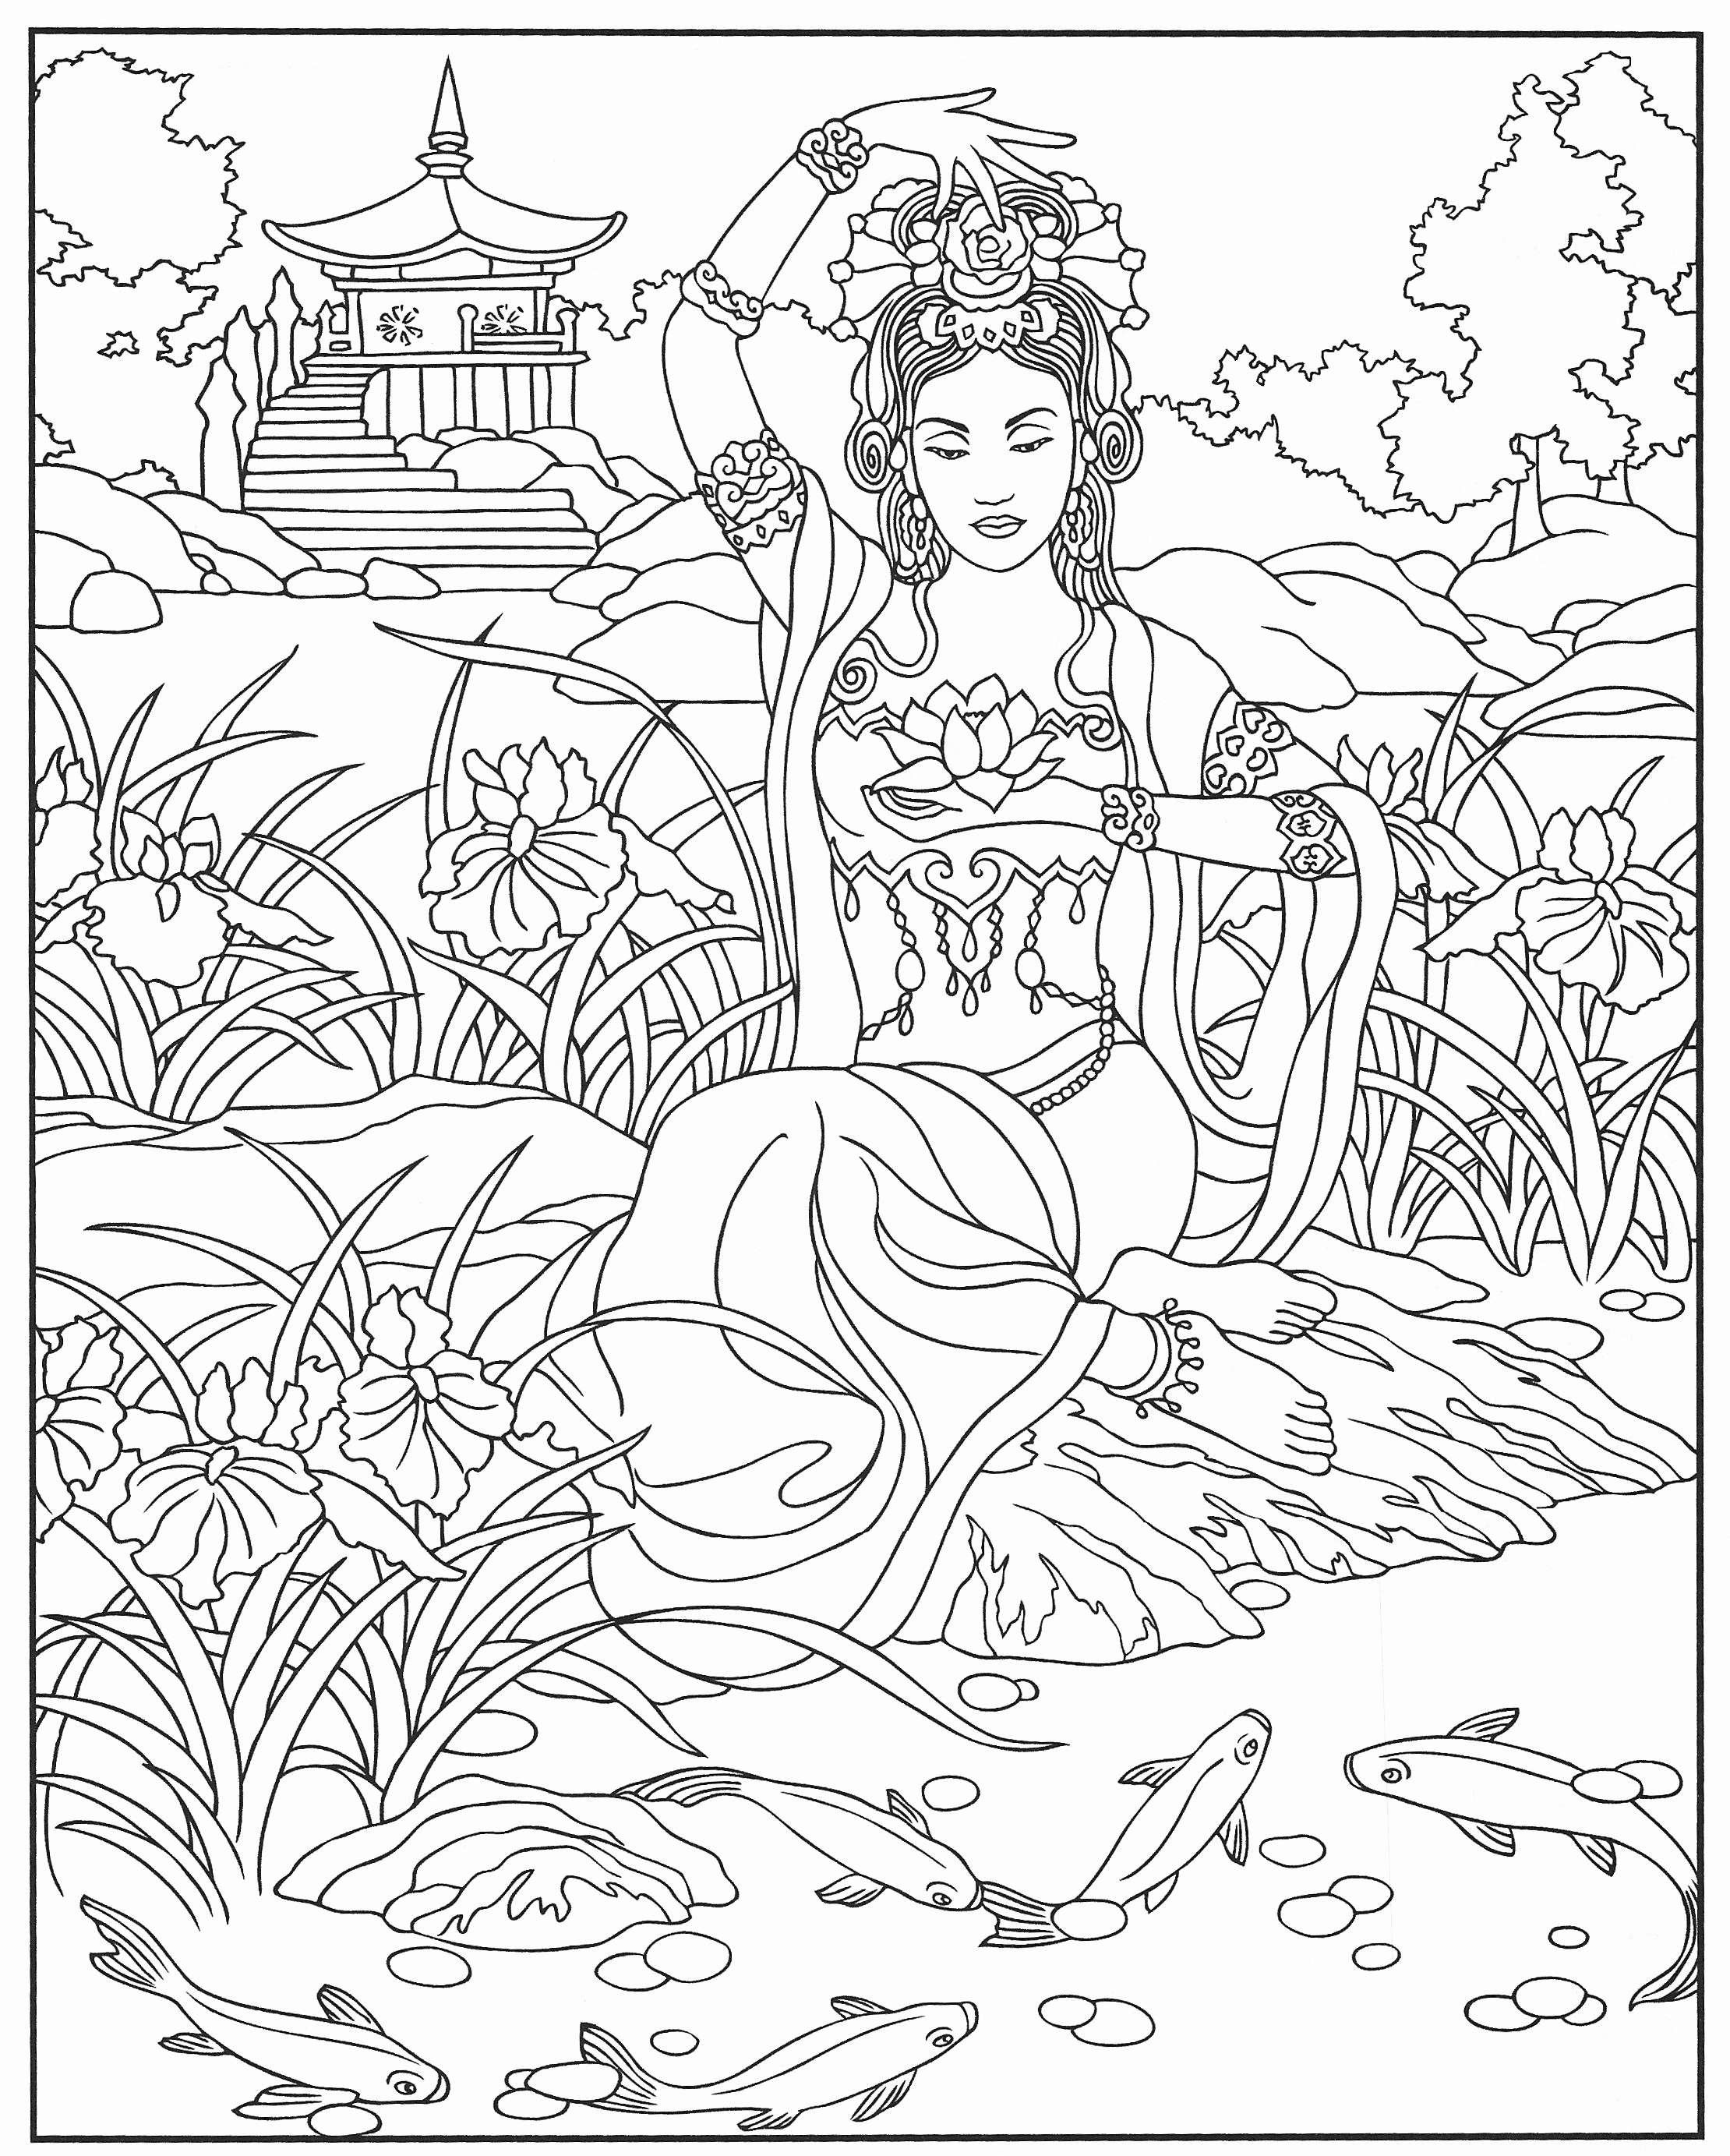 Disney Princess Thanksgiving Coloring Pages Animal Coloring Pages Coloring Pages Coloring Books